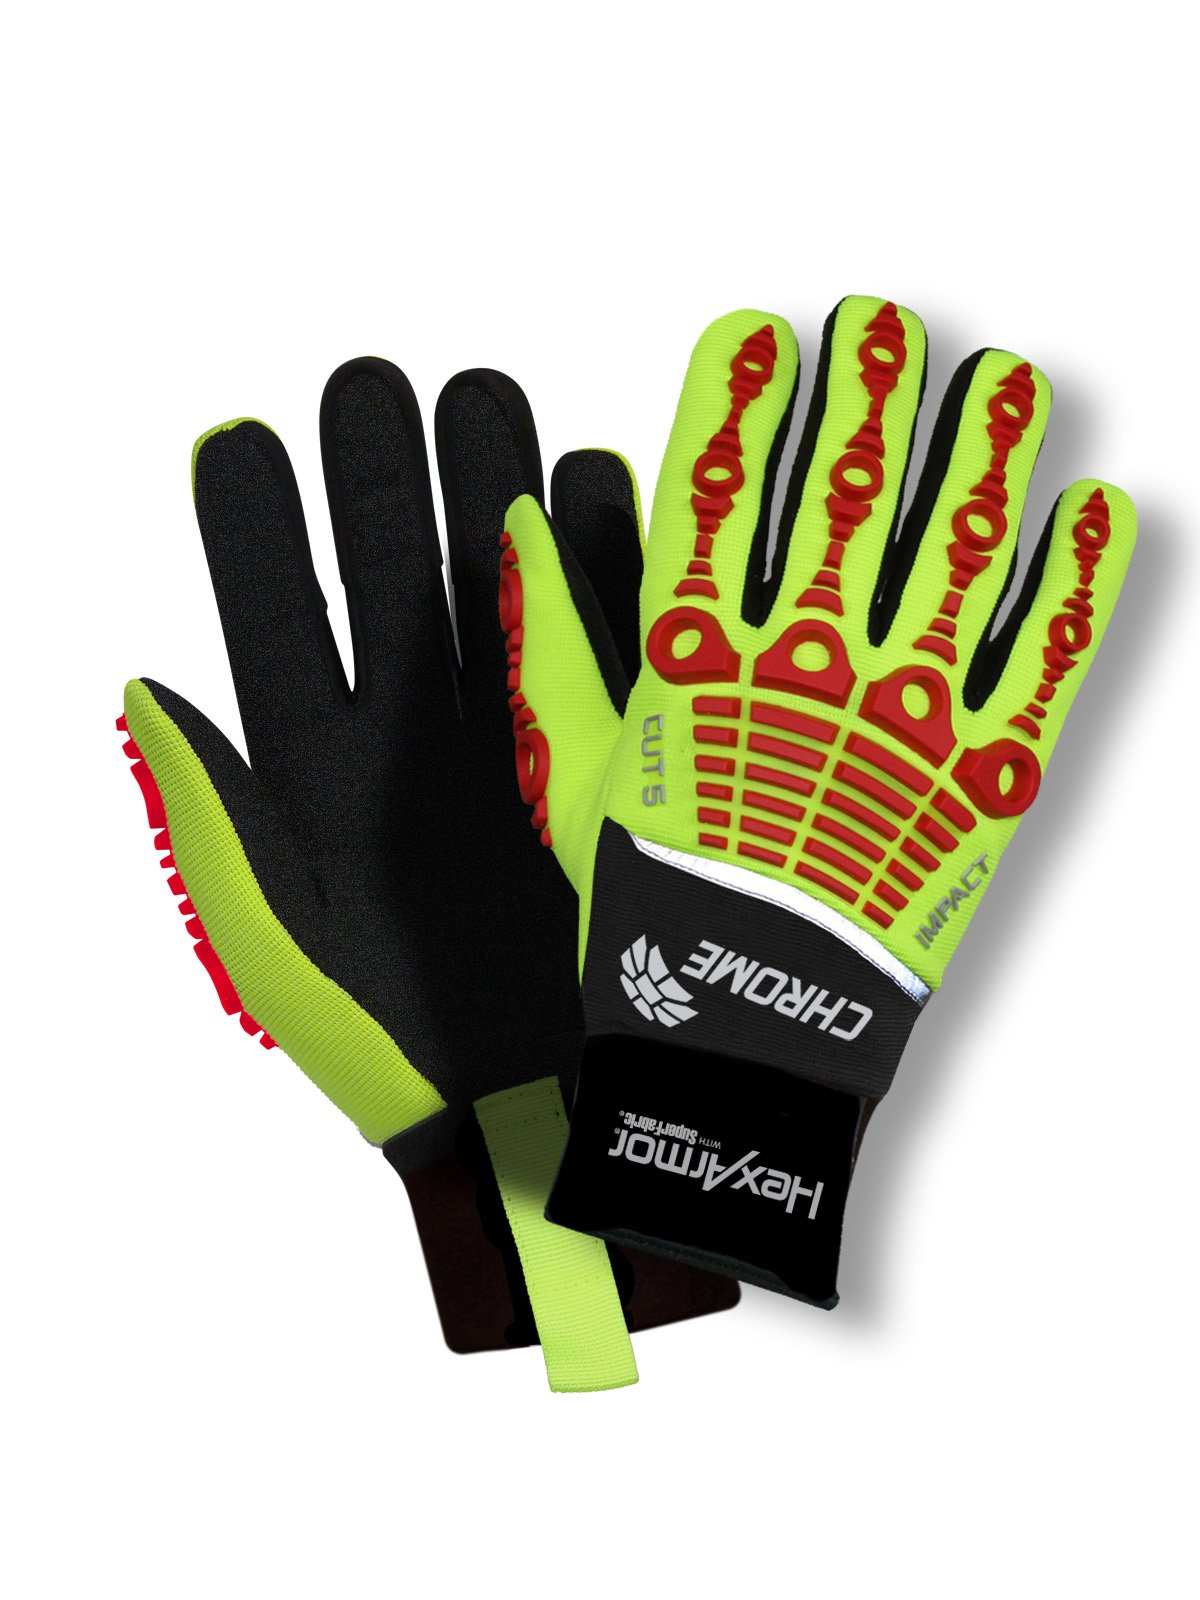 Cut Resistant Gloves, Yellow/Red, XL, PR